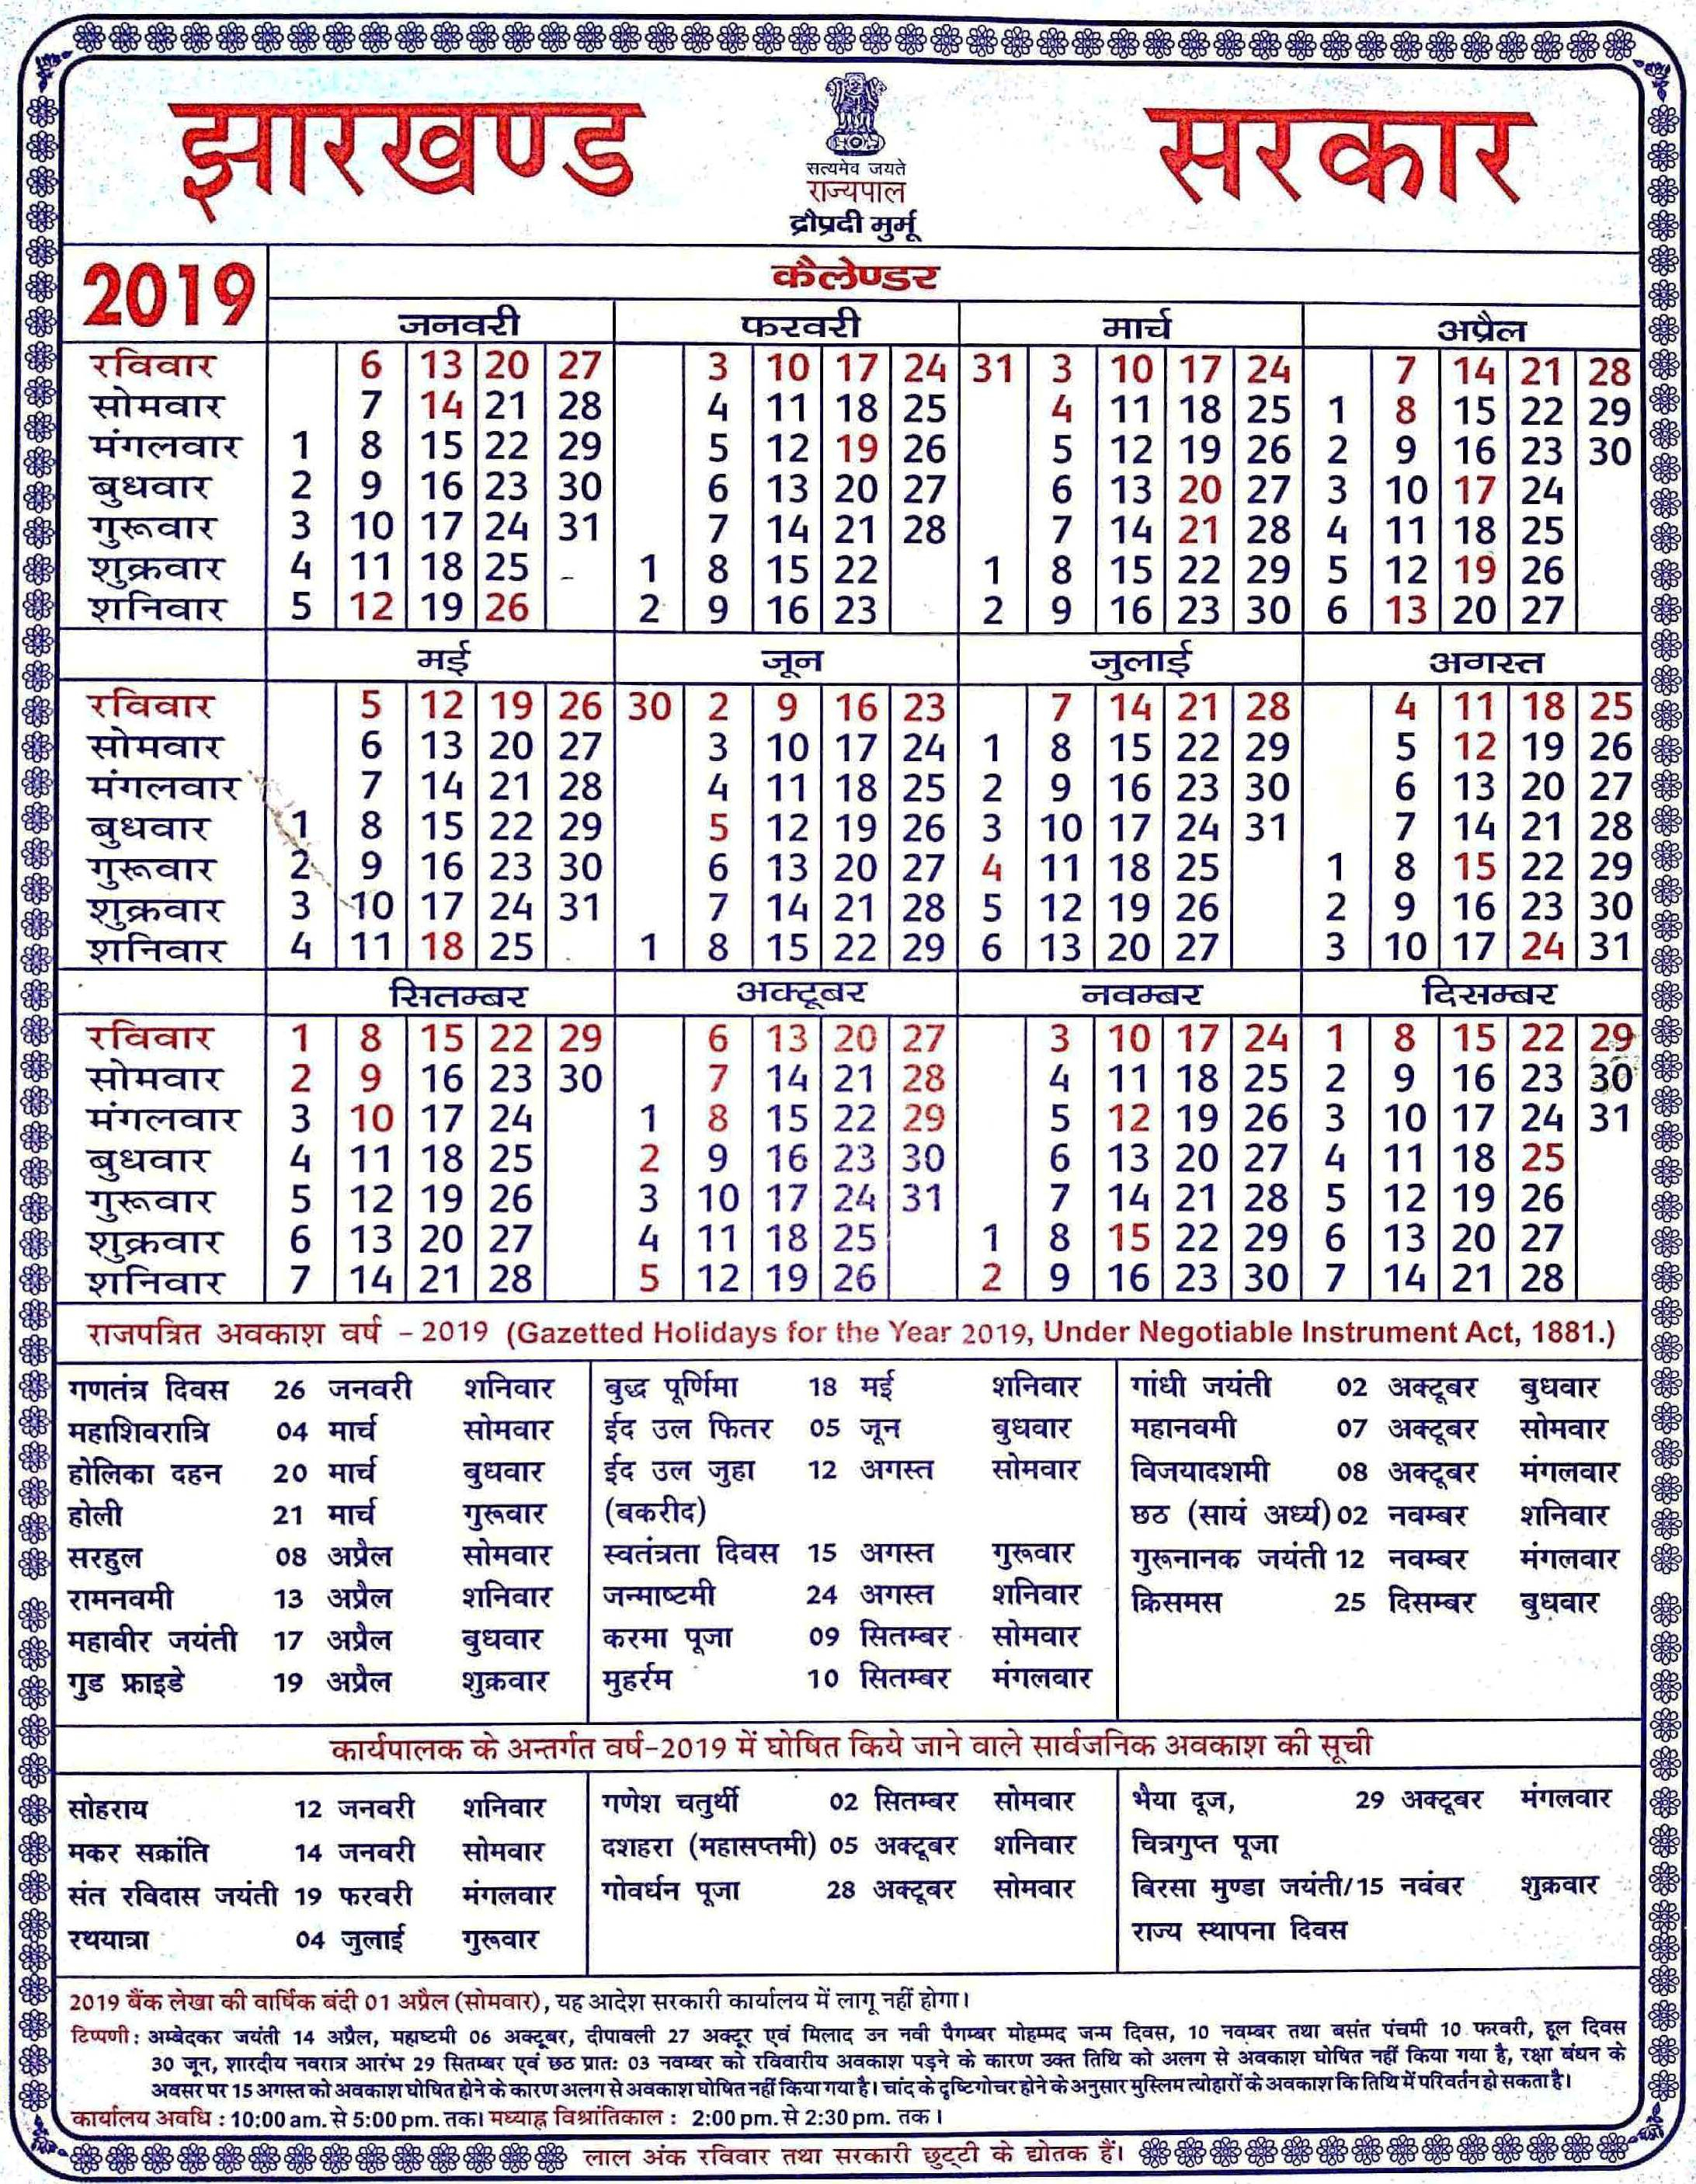 District Giridih, Government Of Jharkhand | City Of Hills intended for Bihar Sarkar Calendar 2020 Pdf